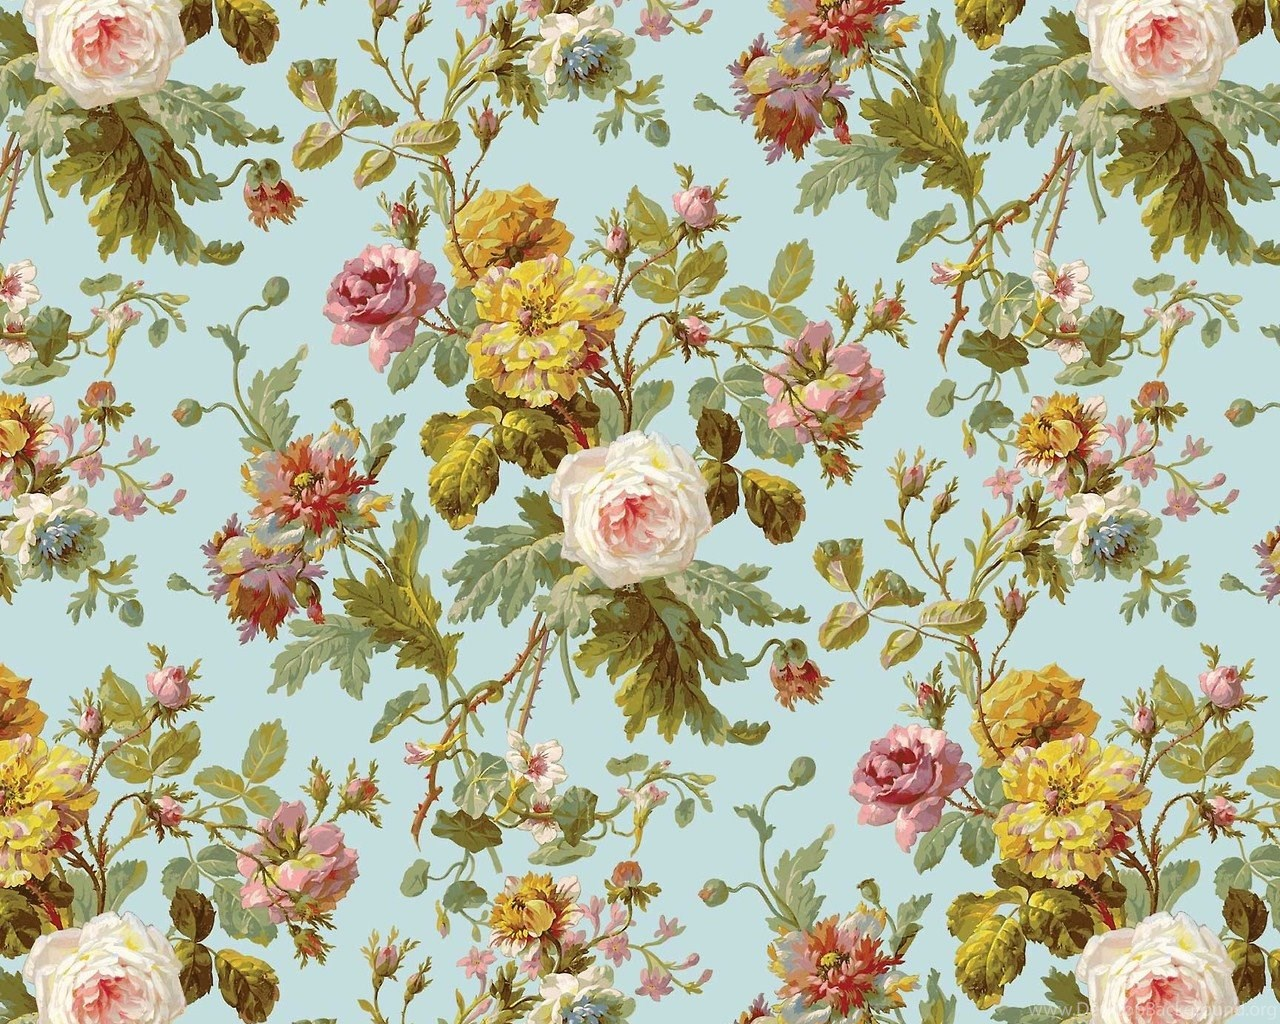 Wallpapers Antique Floral Vintage Pattern Tumblr 595148 8